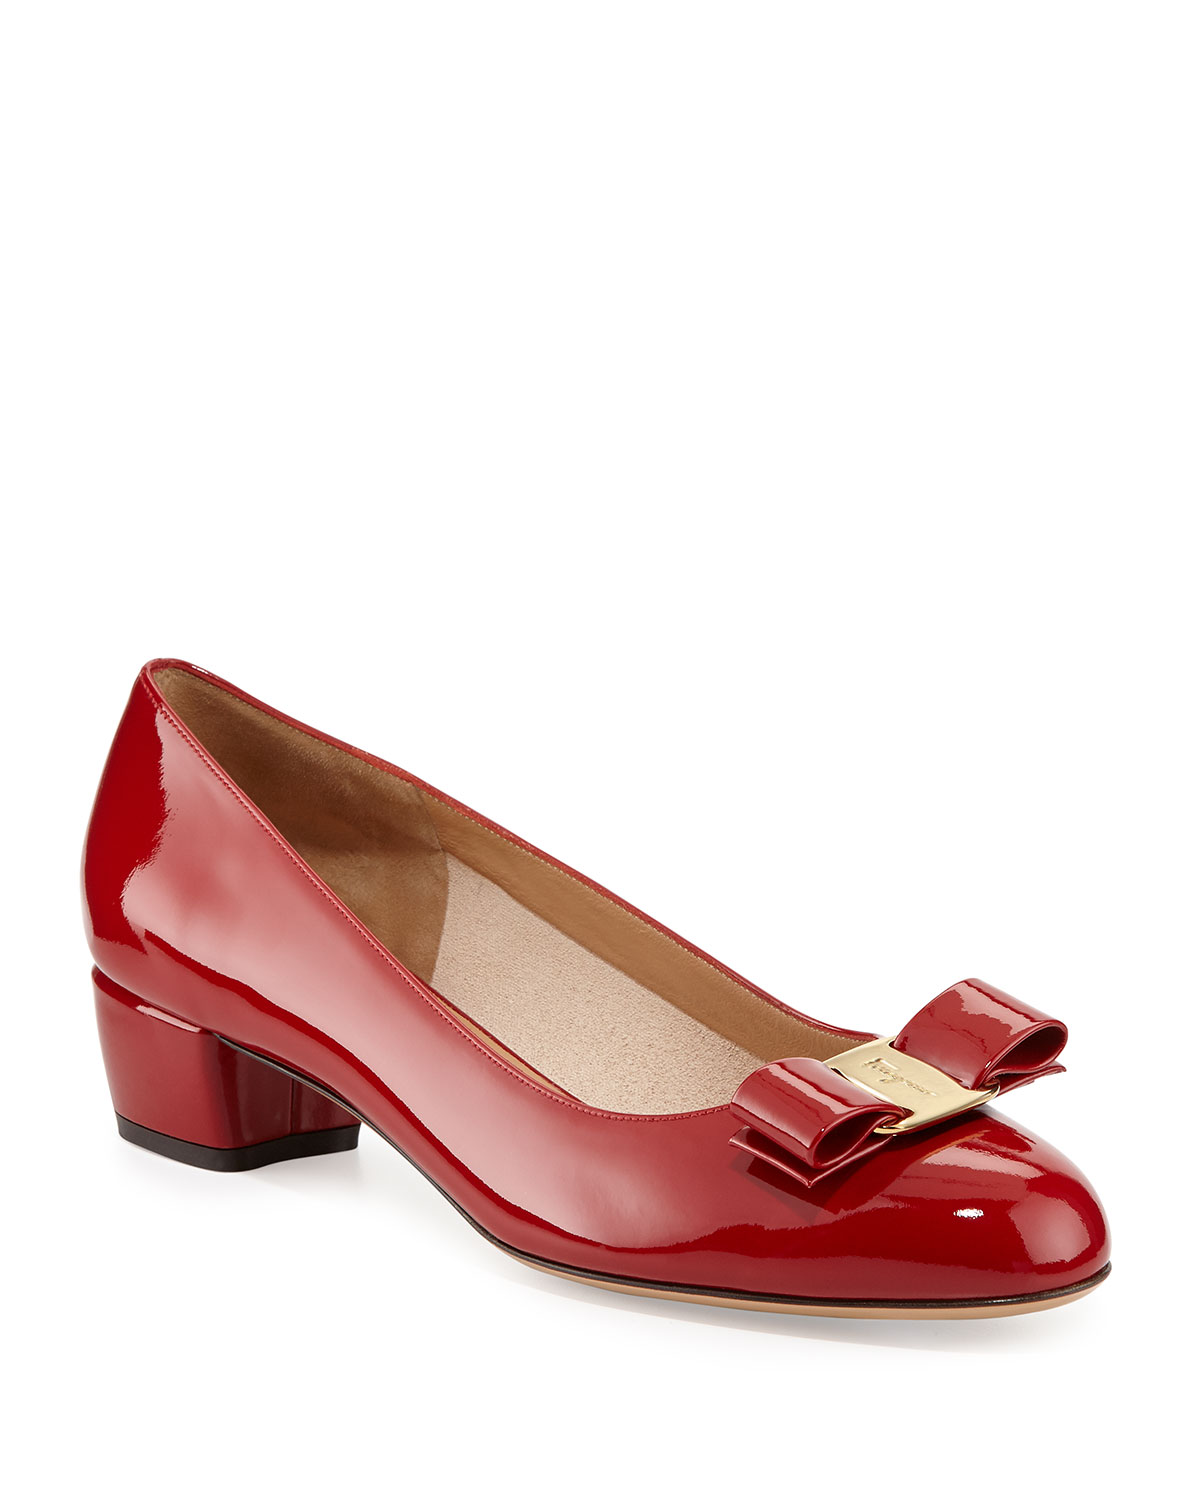 5461a05b004 Vara 1 Patent Bow Pumps, Red (Rosso)